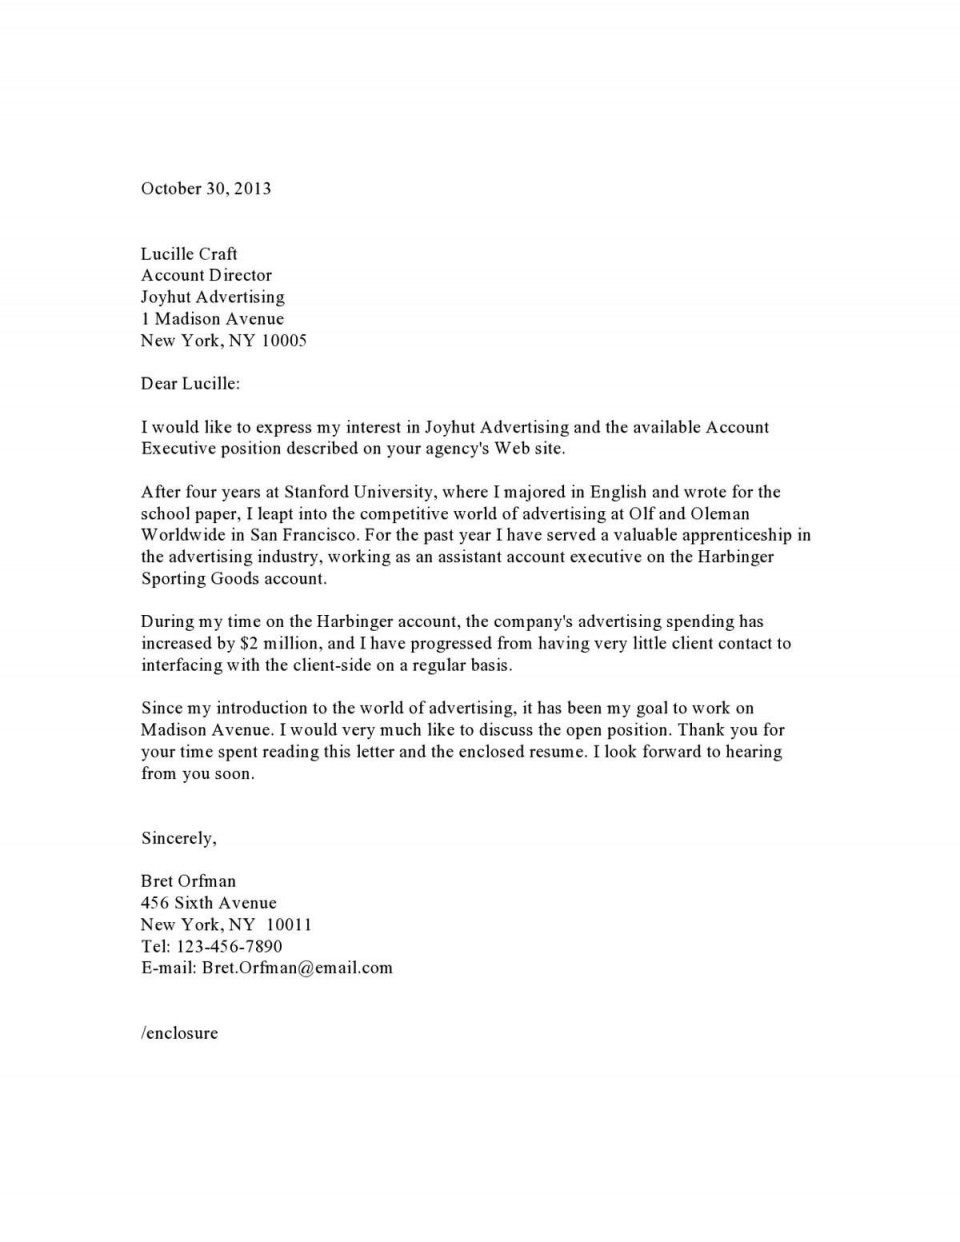 002 Marvelou Cover Letter Writing Template Picture  How To Write A Great Cv Example960